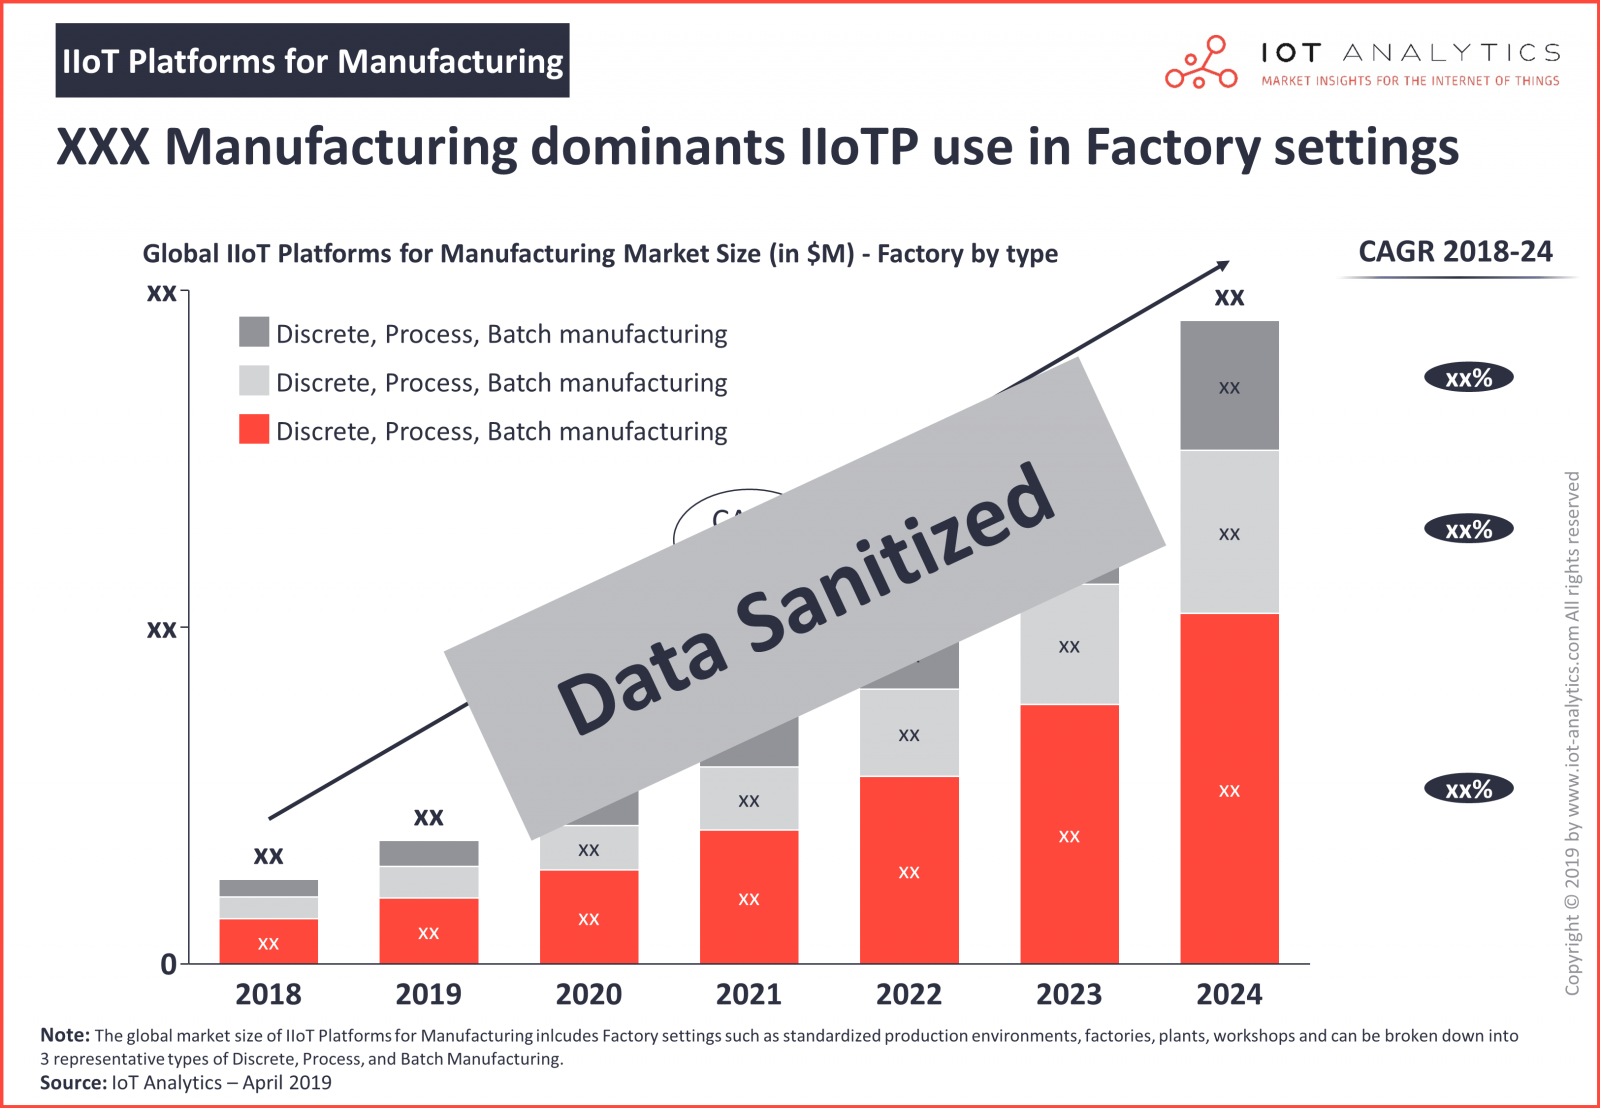 Global IIoT Platforms for Manufacturing Market Size - IIoT Platforms for Manufacturing 2019-2024 (IoT Analytics GmbH)